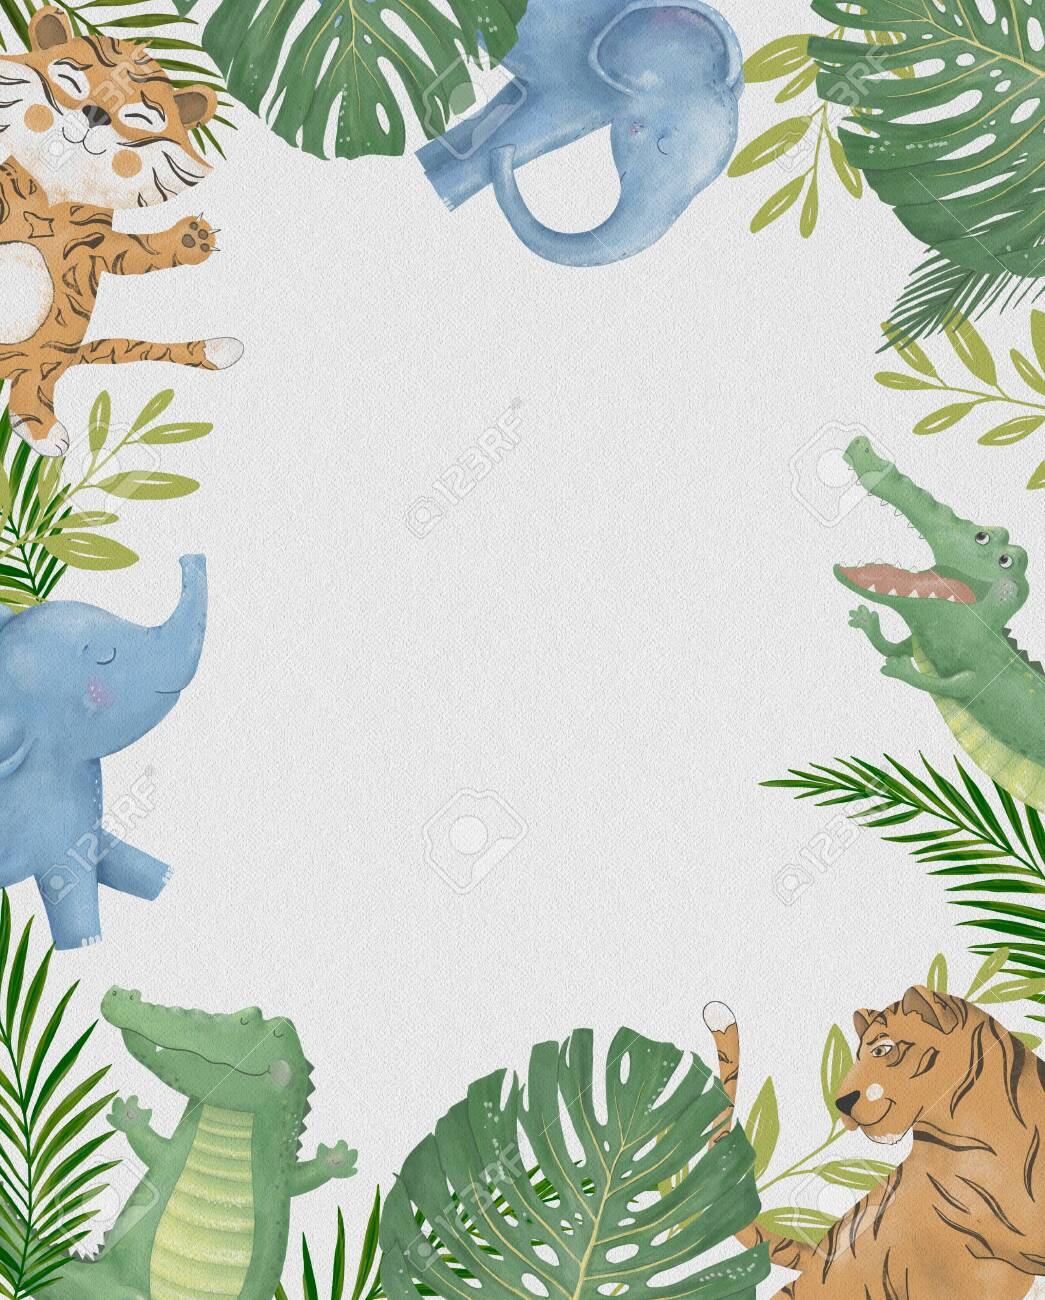 Cute Safari Cartoon Animals Border With Cloud Shaped Copy Space